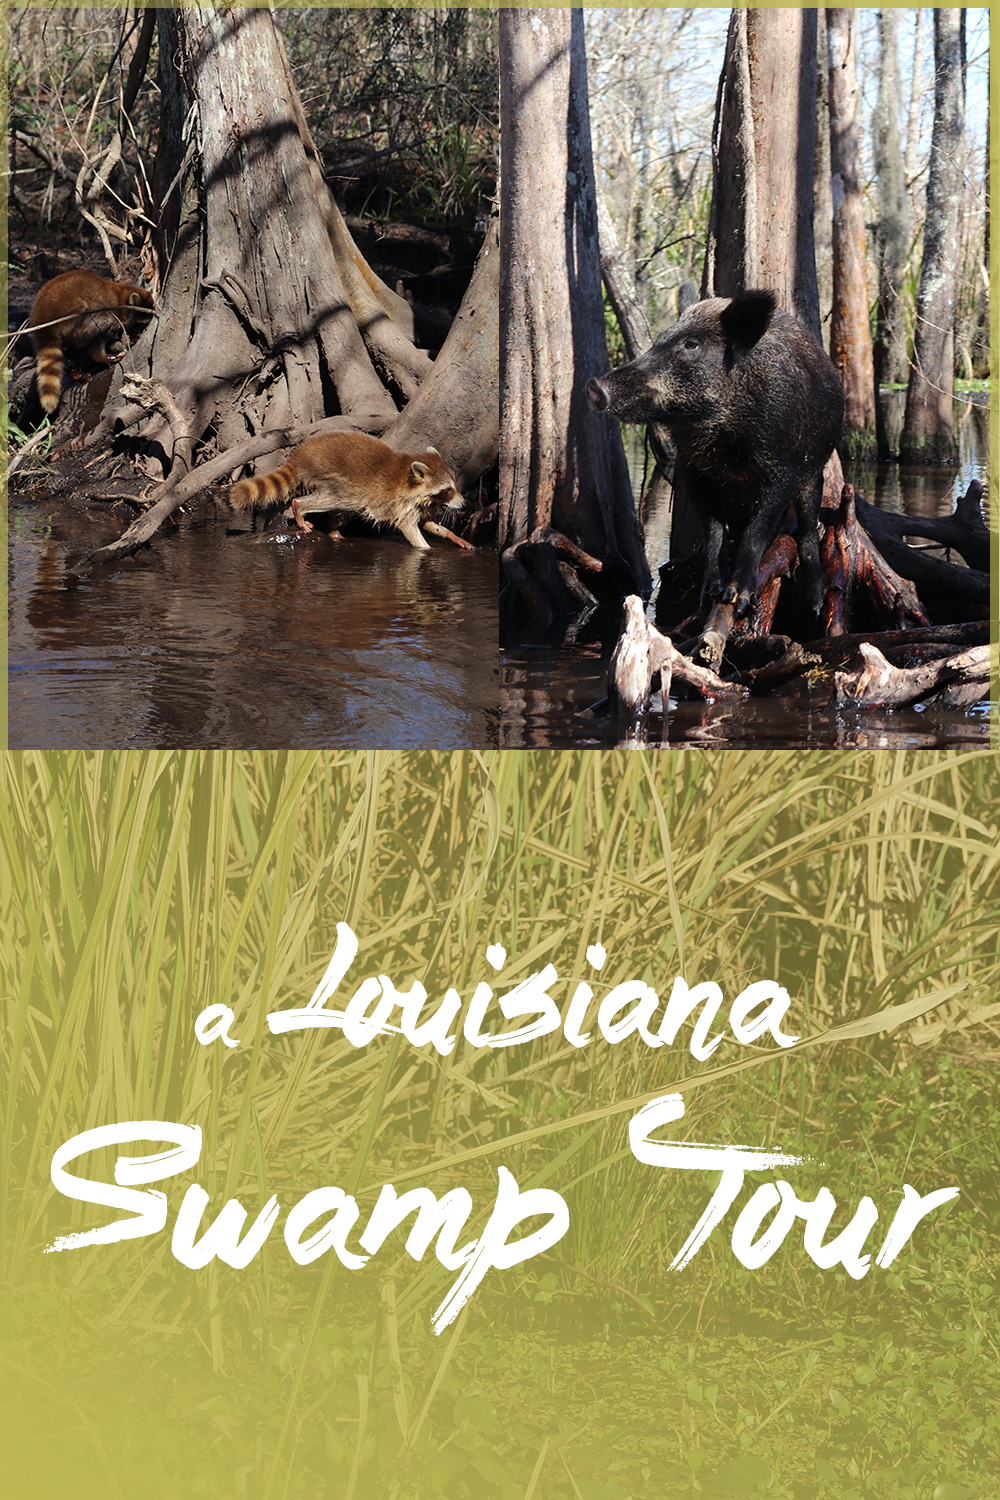 A Louisiana Swamp Tour